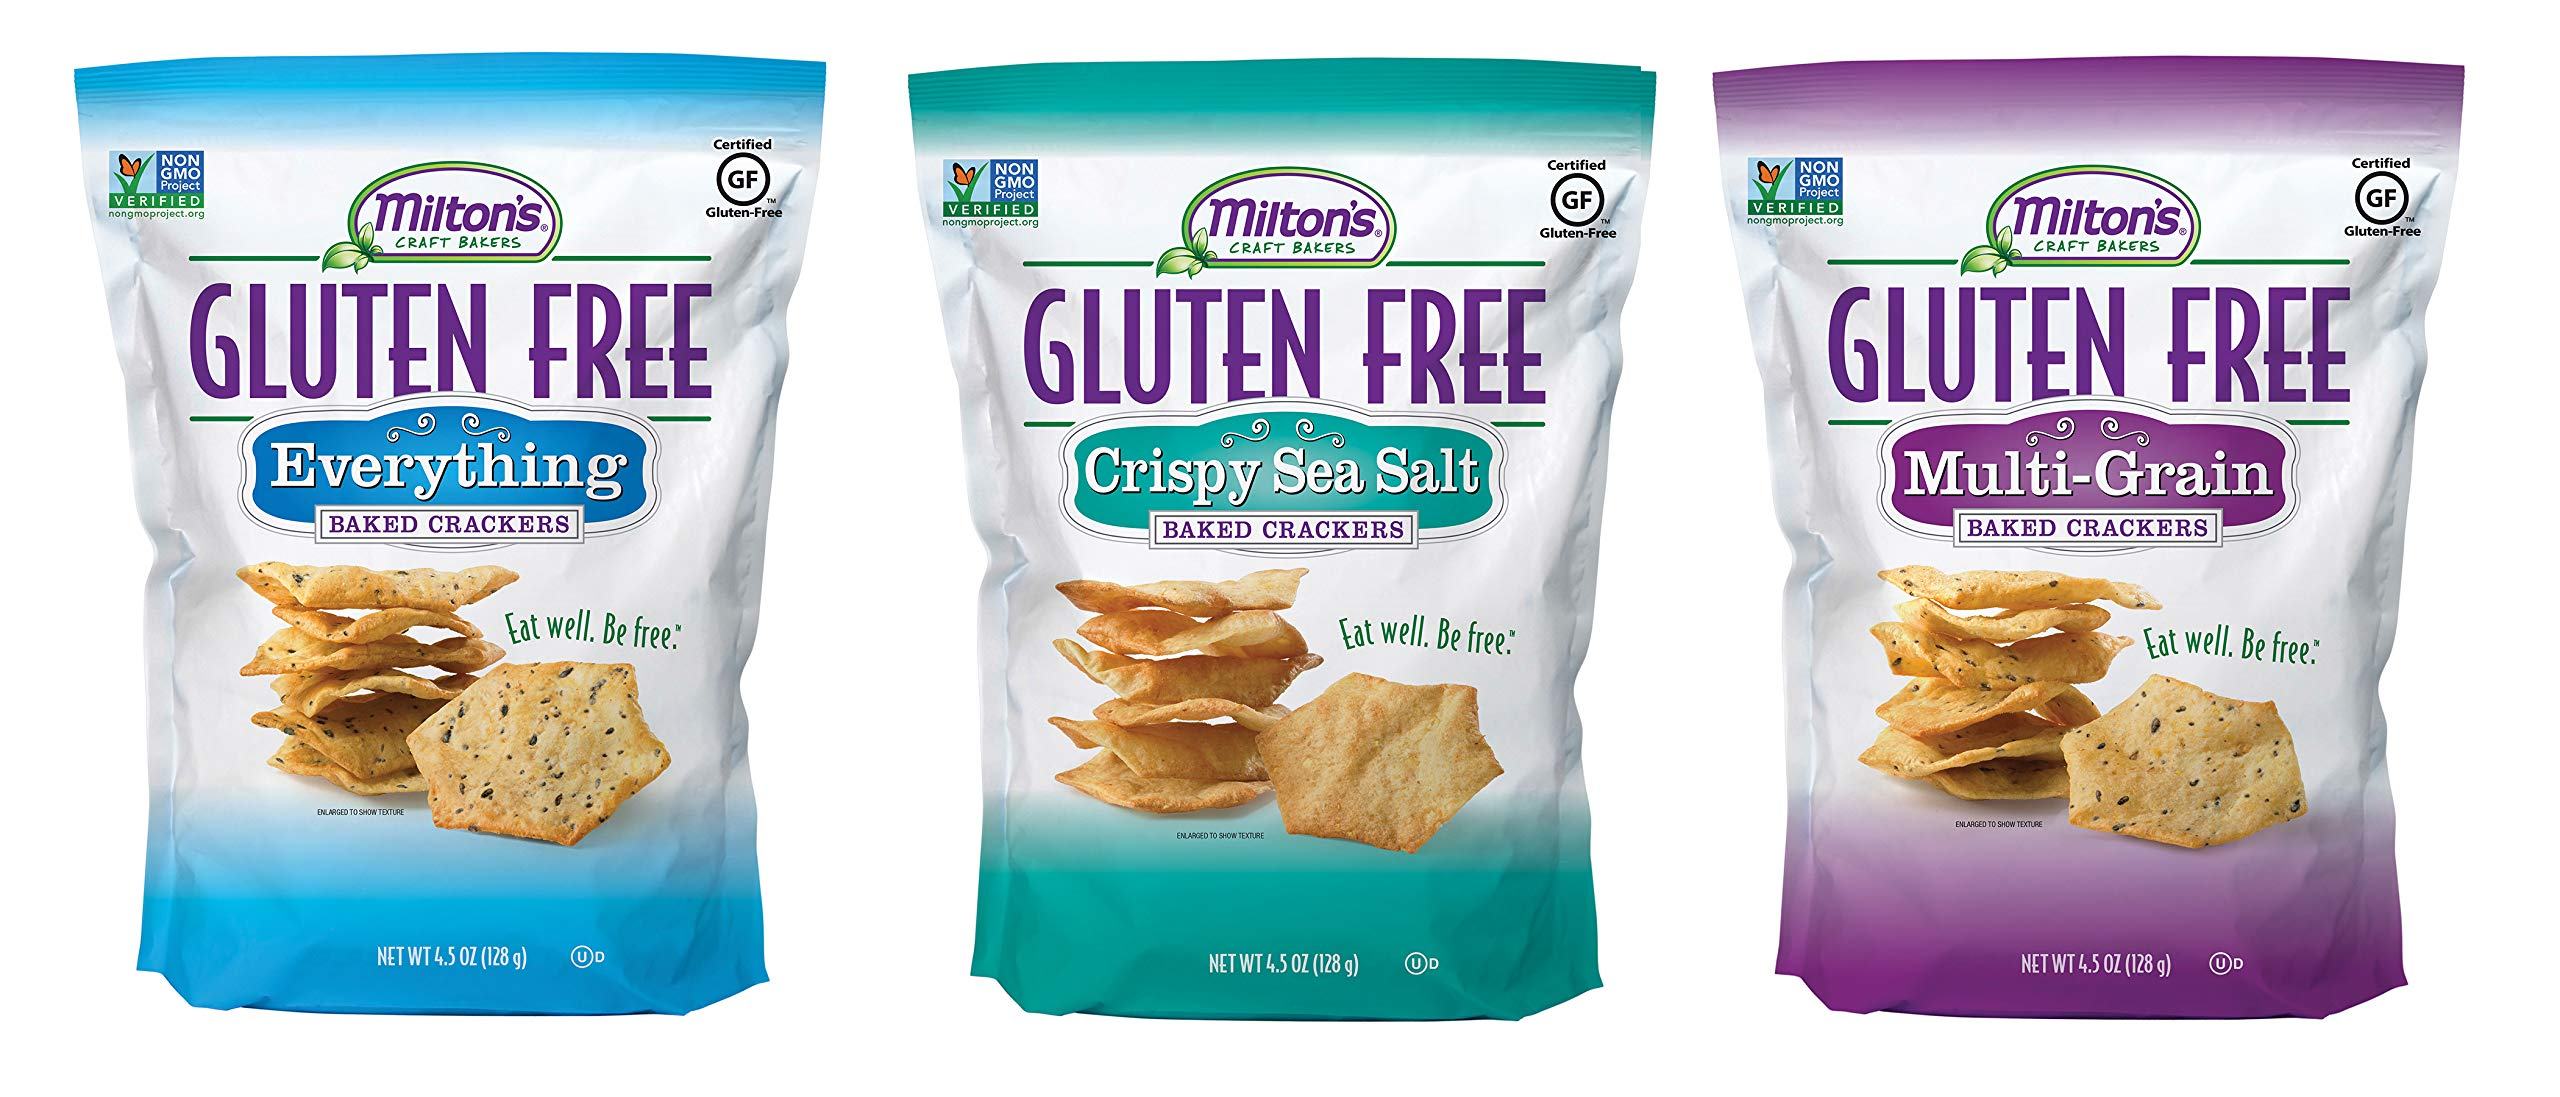 Milton's Gluten Free Baked Crackers, 3 Flavor Variety Bundle. Crispy and Gluten-Free Baked Grain Crackers (Crispy Sea Salt, Everything, and Multi-Grain, 4.5 ounce) by Milton's Craft Bakers